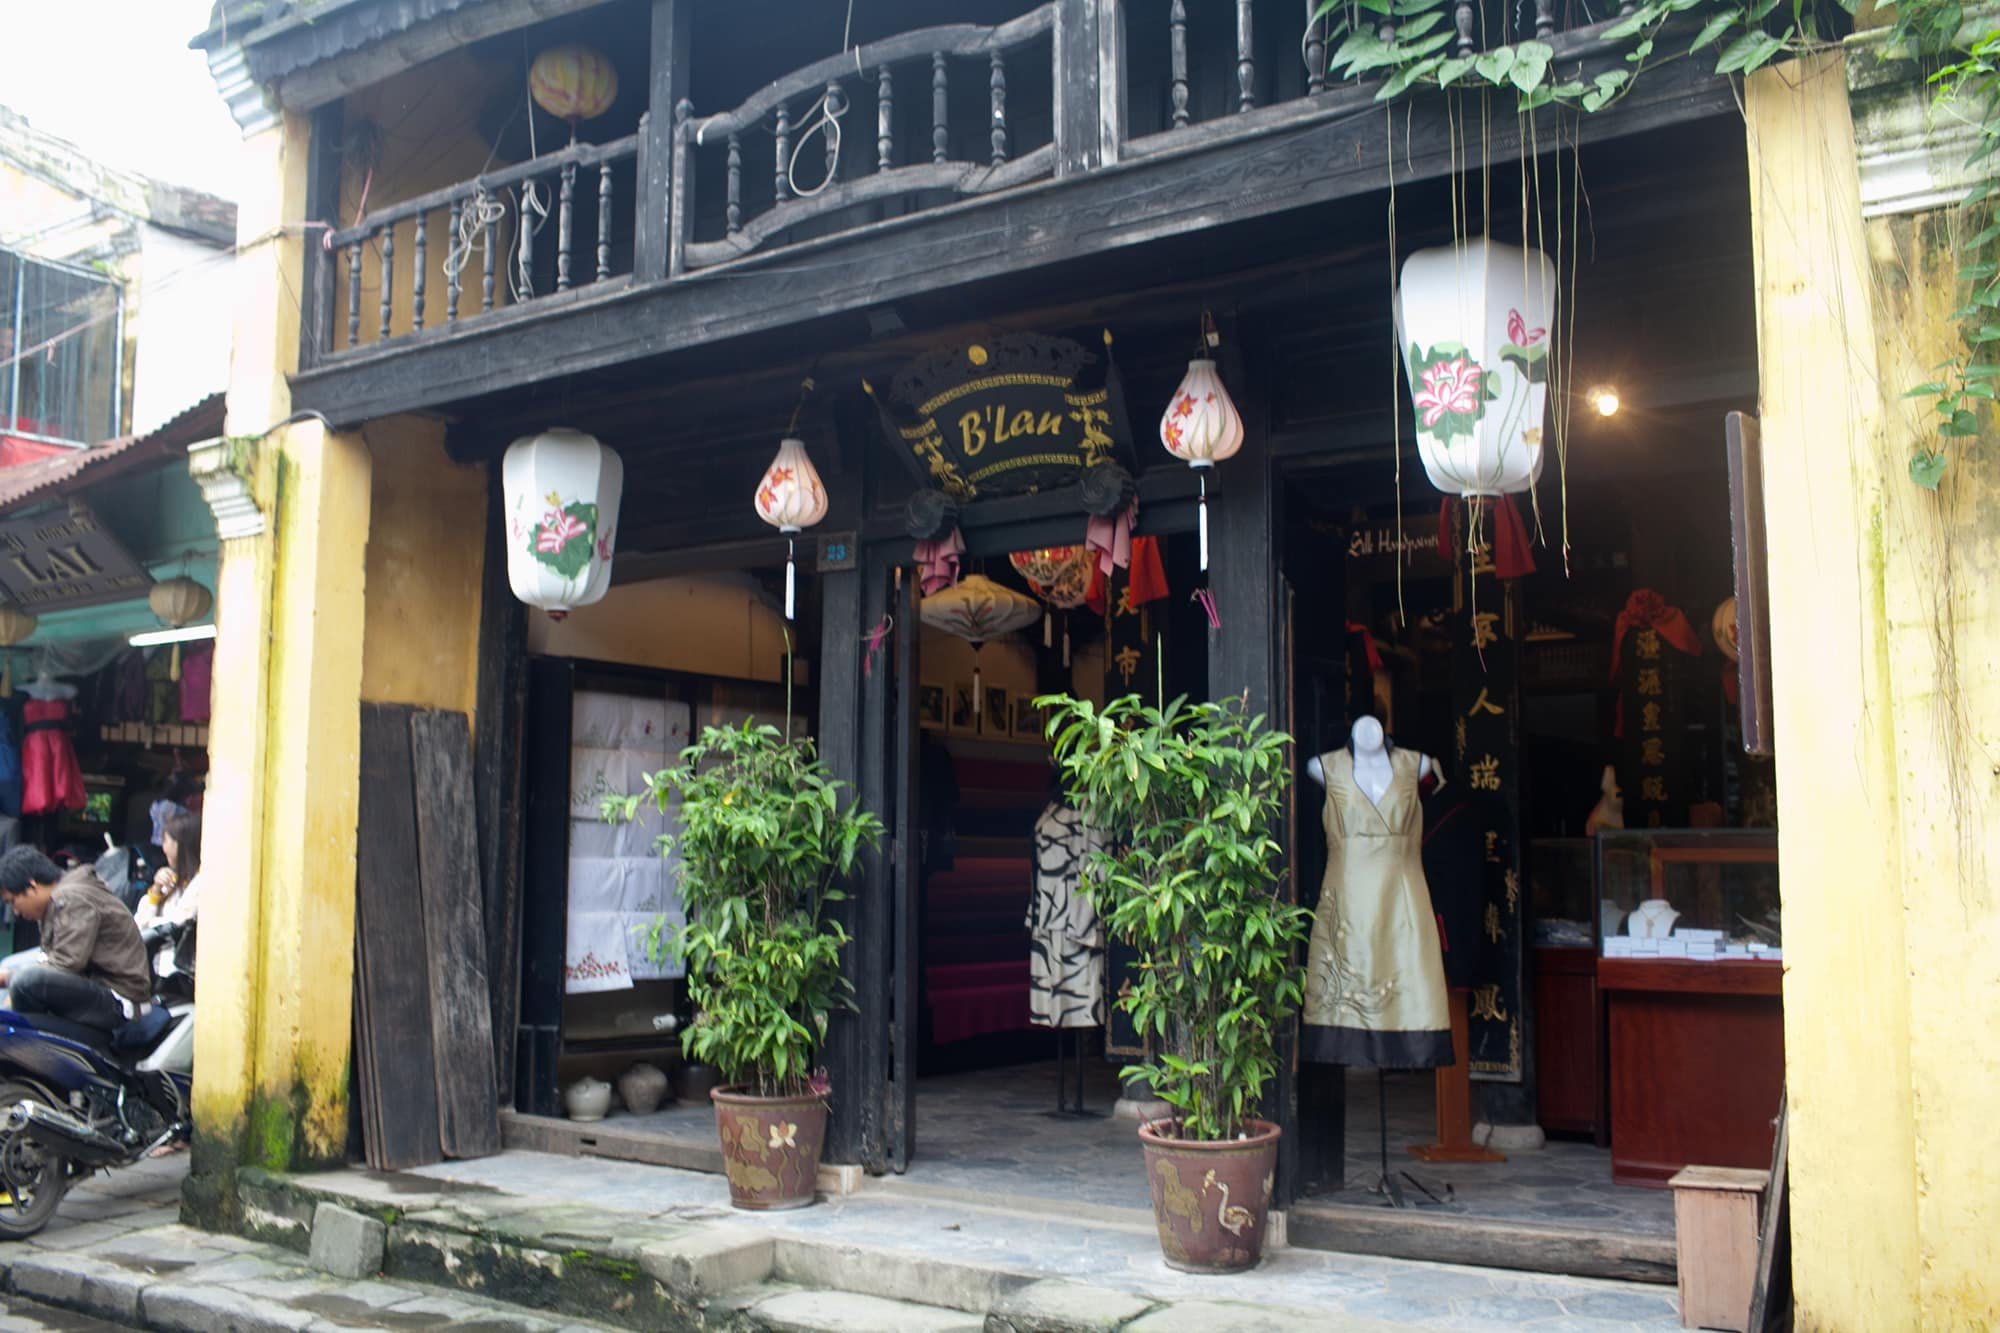 Shopping in Hoi An - custom tailored dress at B'Lan in Hoi An, Vietnam